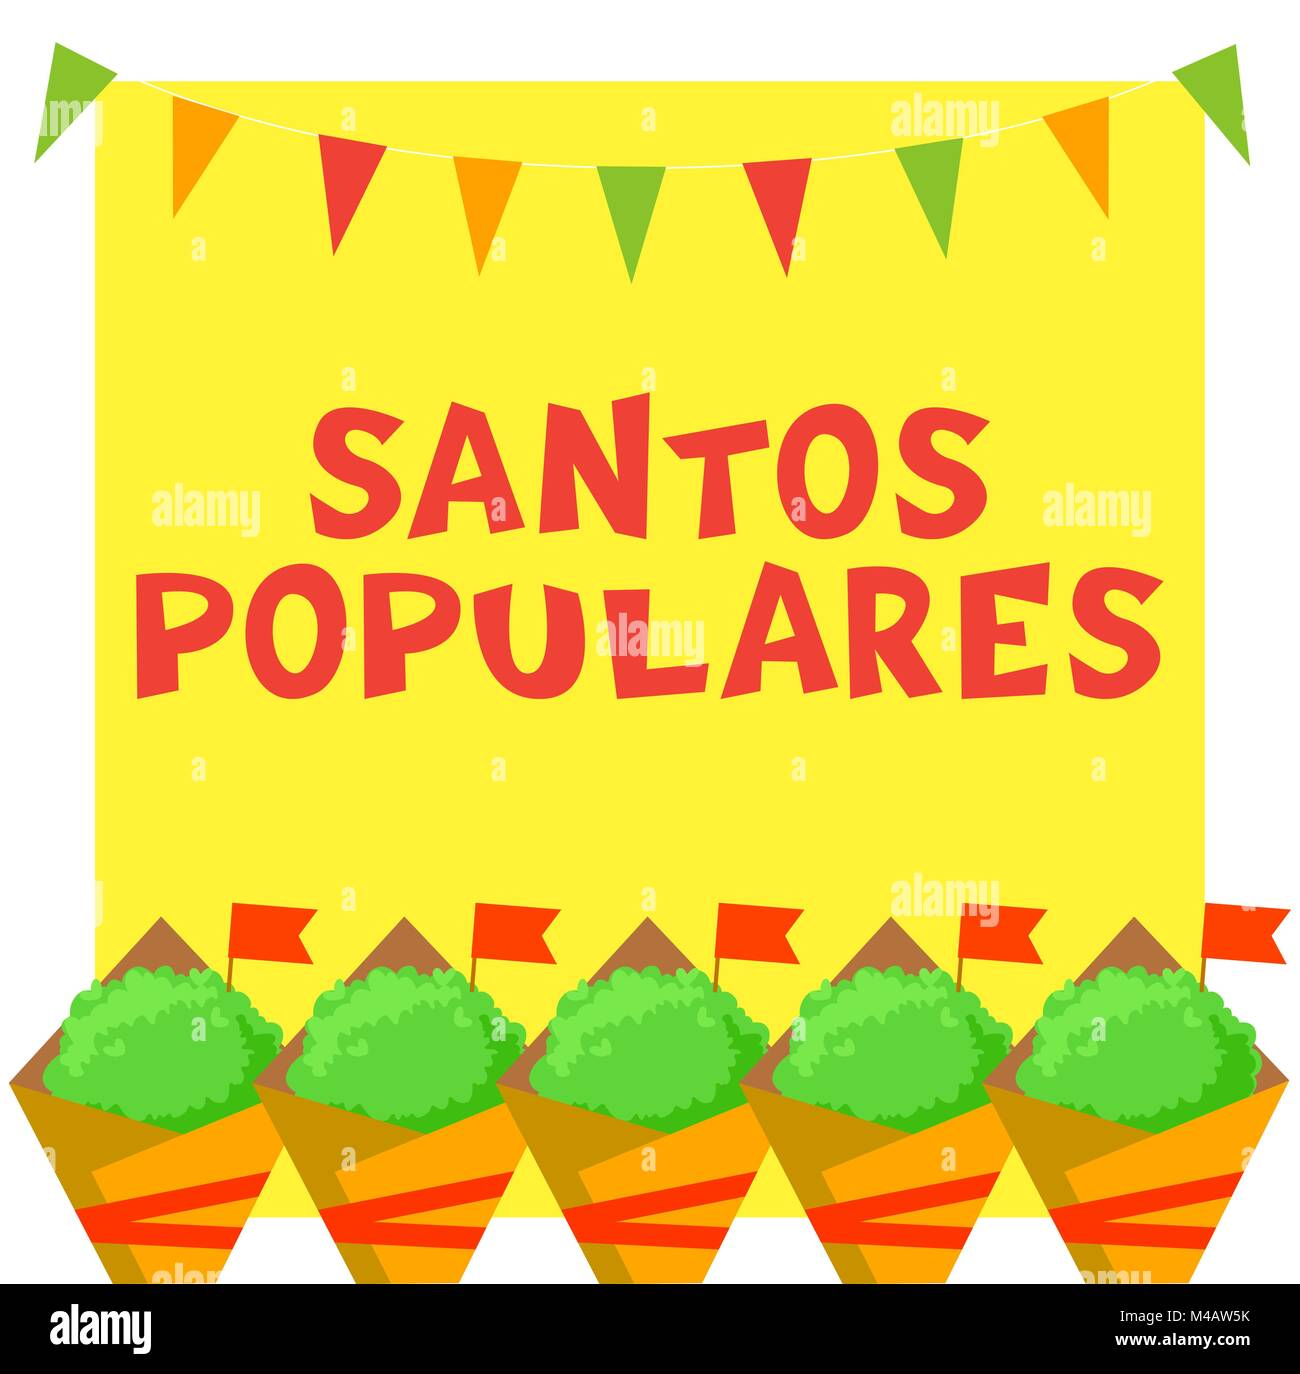 Santos Populares Portuguese festival card with manjerico plants and bunting garland. - Stock Vector